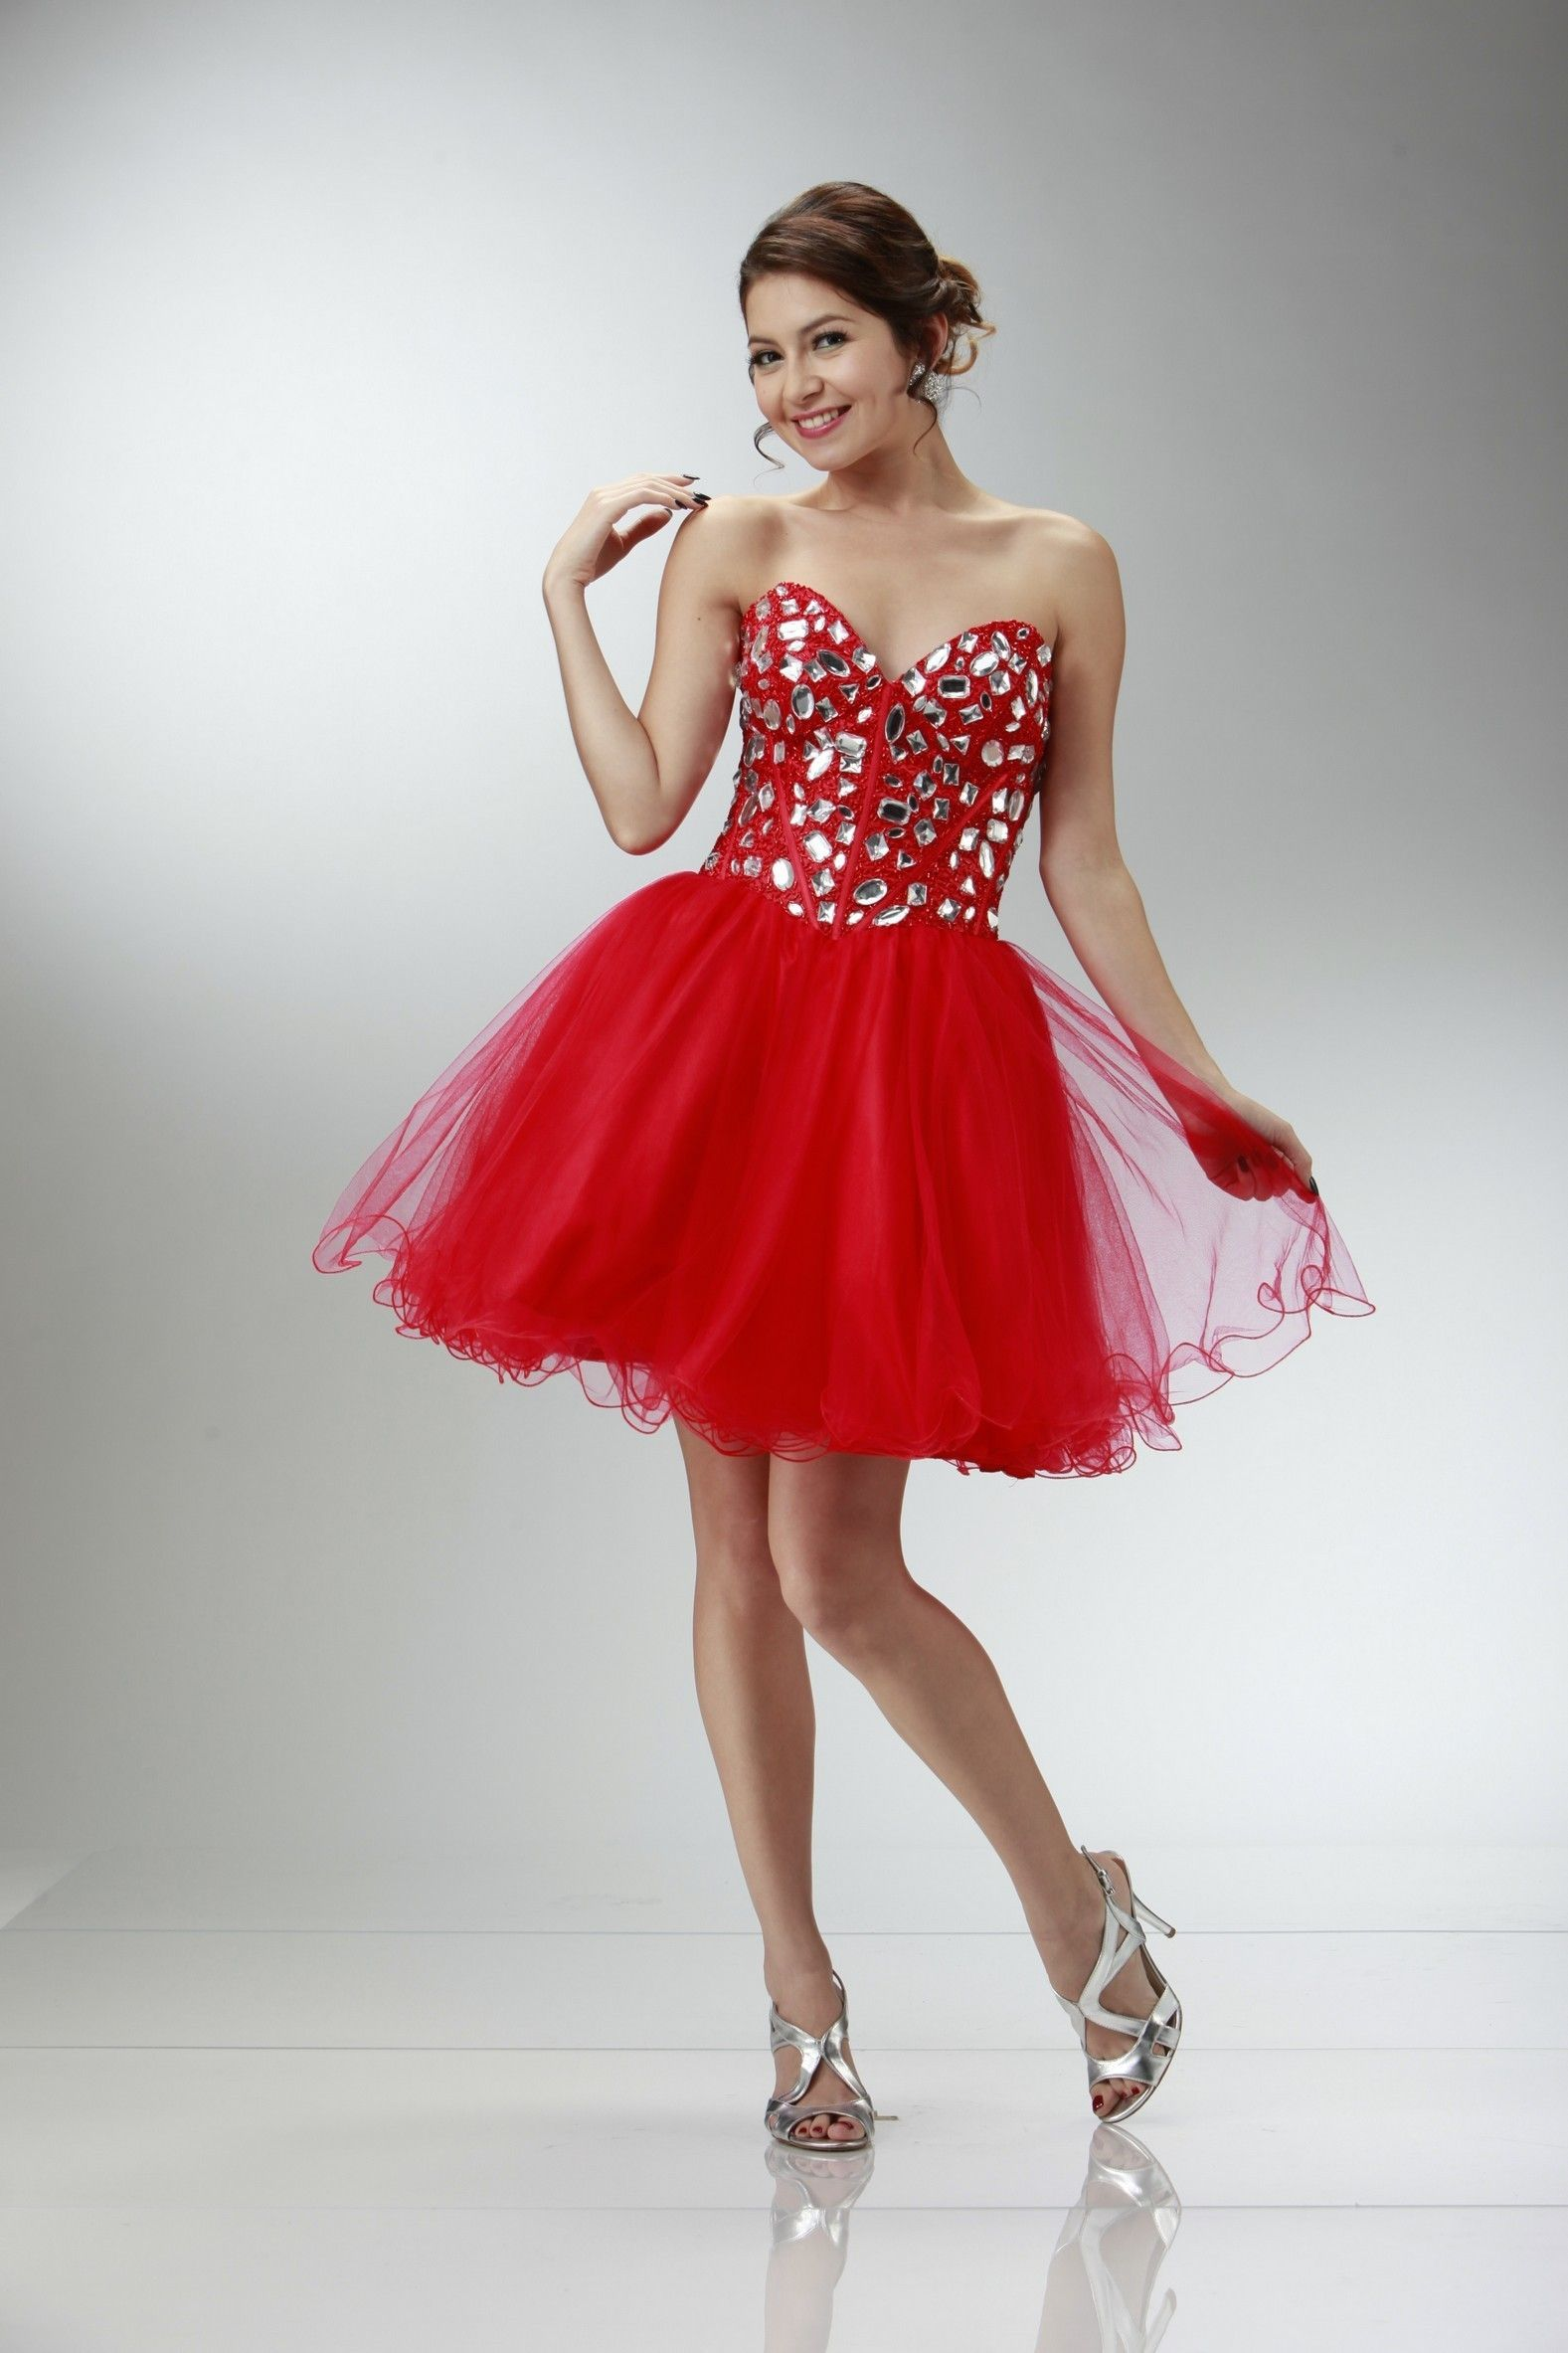 Prom red short dresses with straps catalog photo